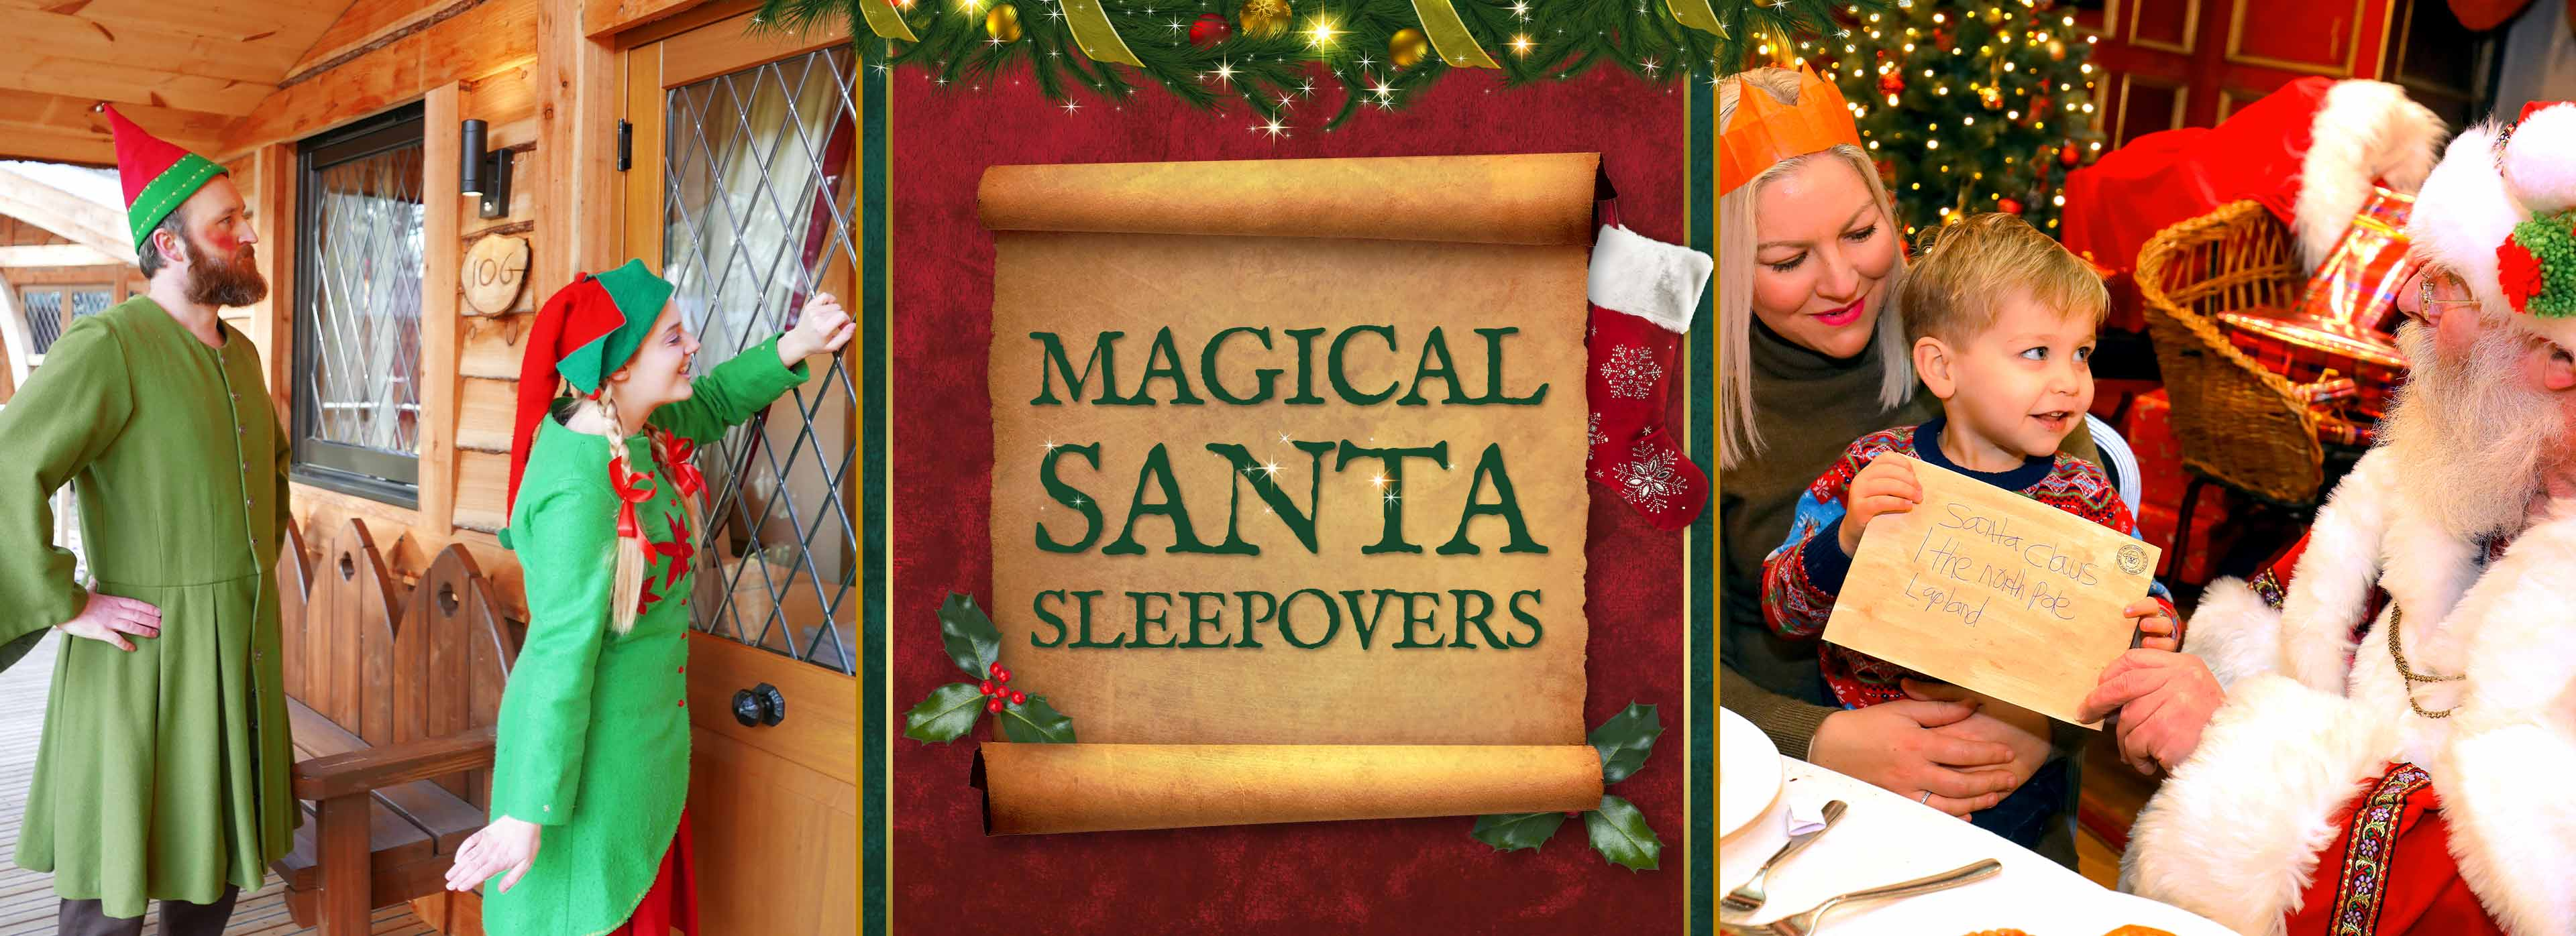 Santa Sleepovers 2019 at Warwick Castle